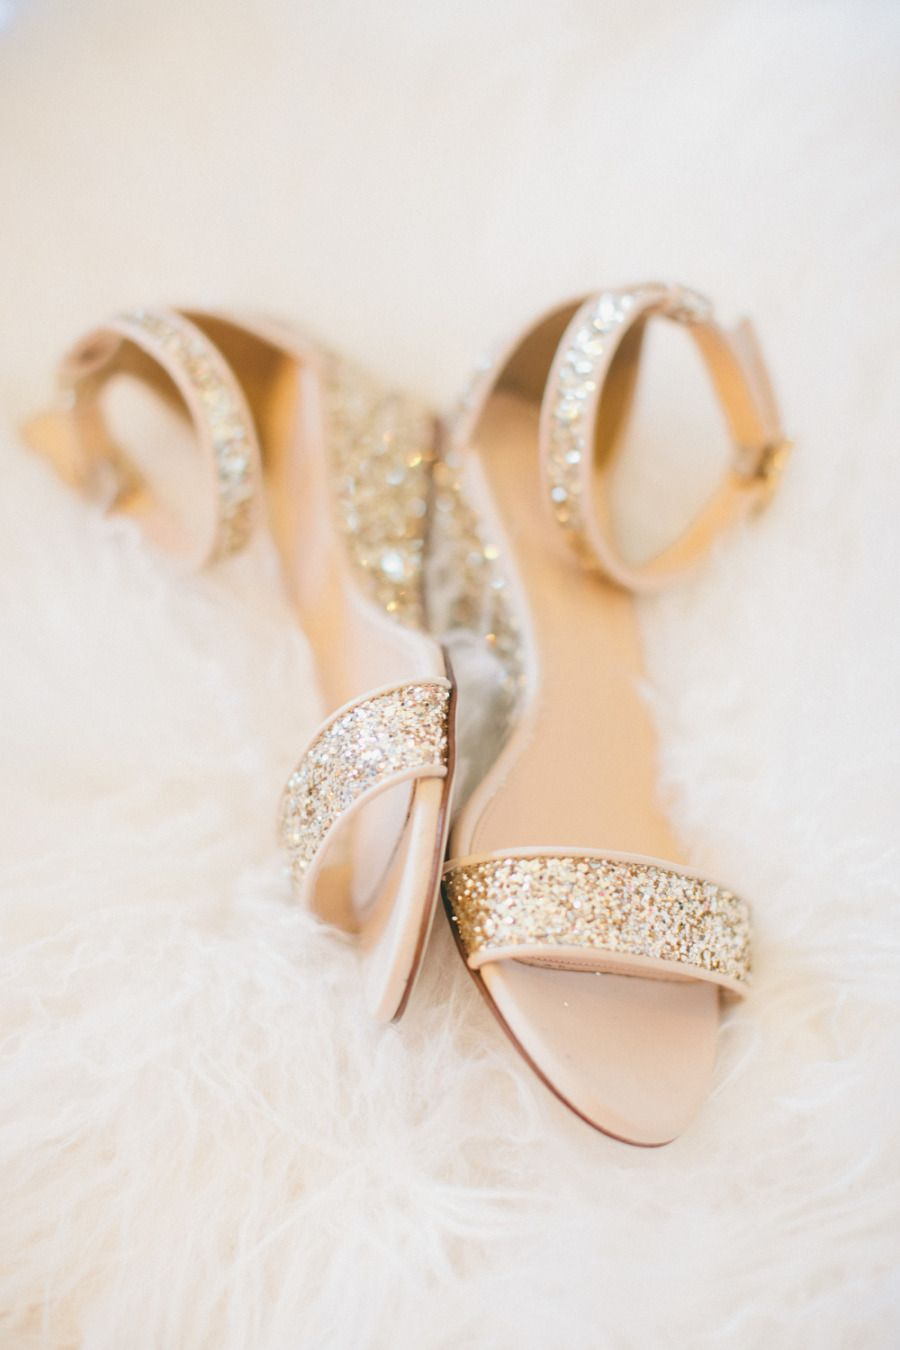 ab0e84d20702 Sparkly gold bridal flats - perfect for partying in style  gold  goldwedding   wedding  bridalshoes  weddingshoes